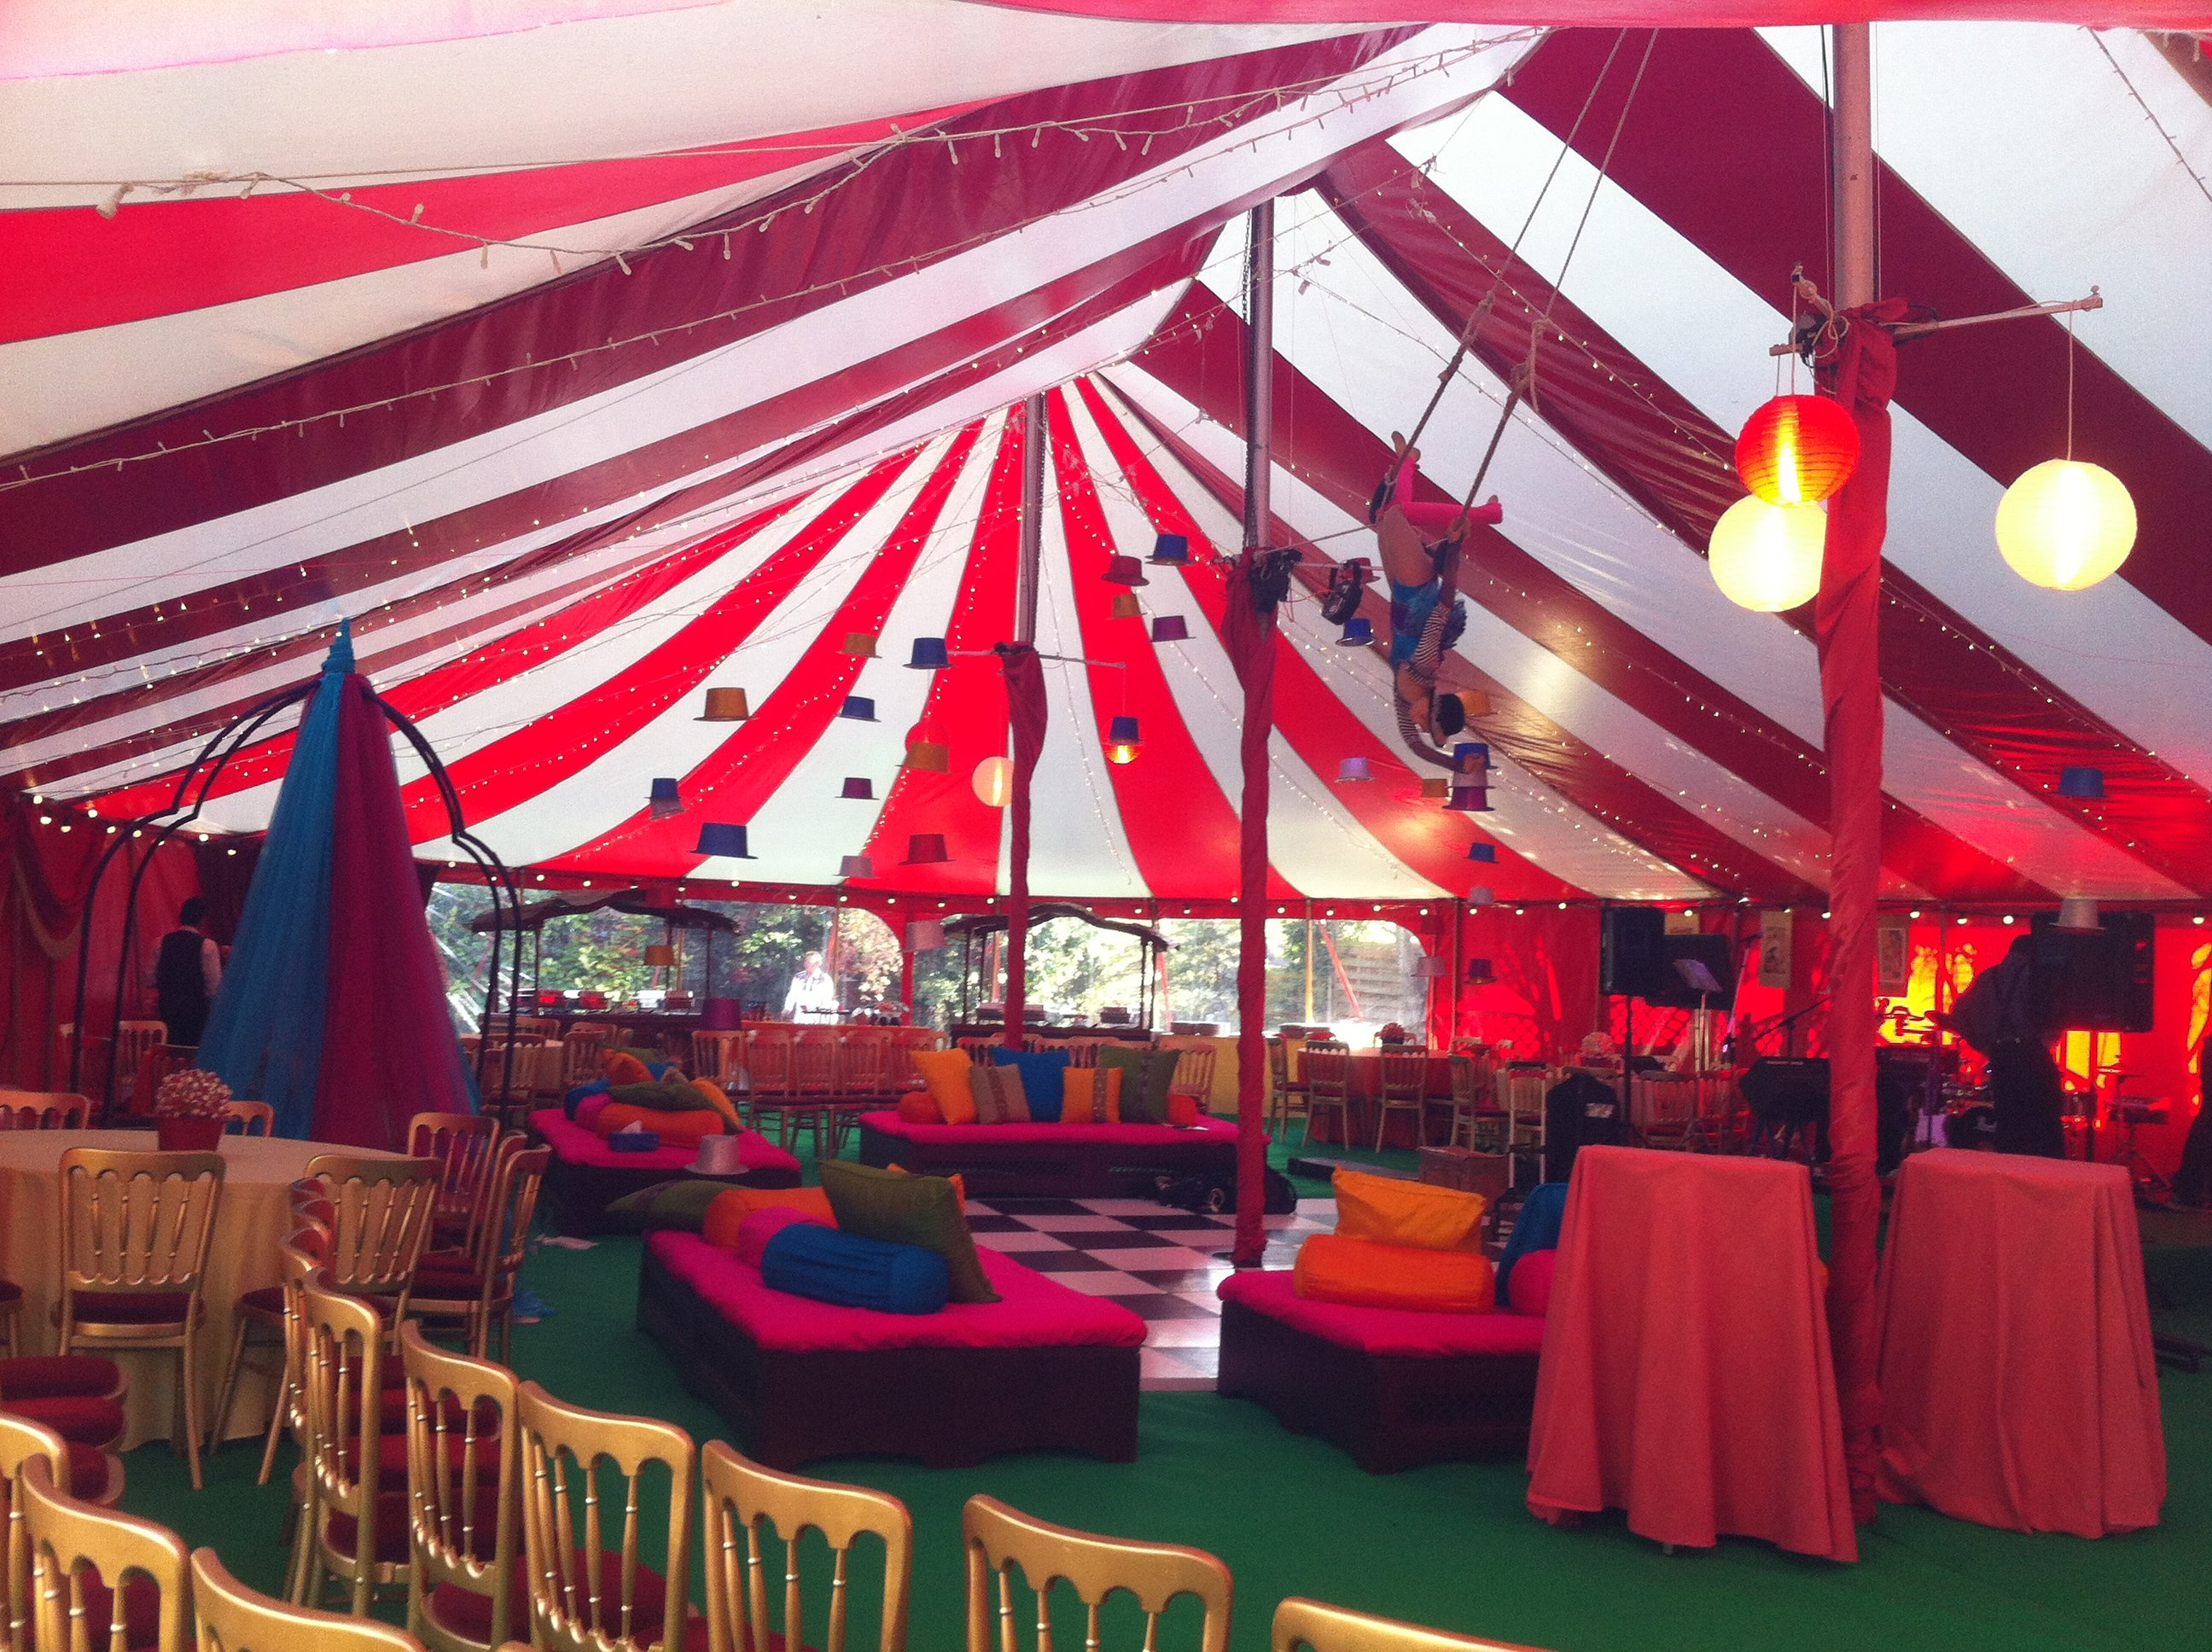 The Carnival Tent